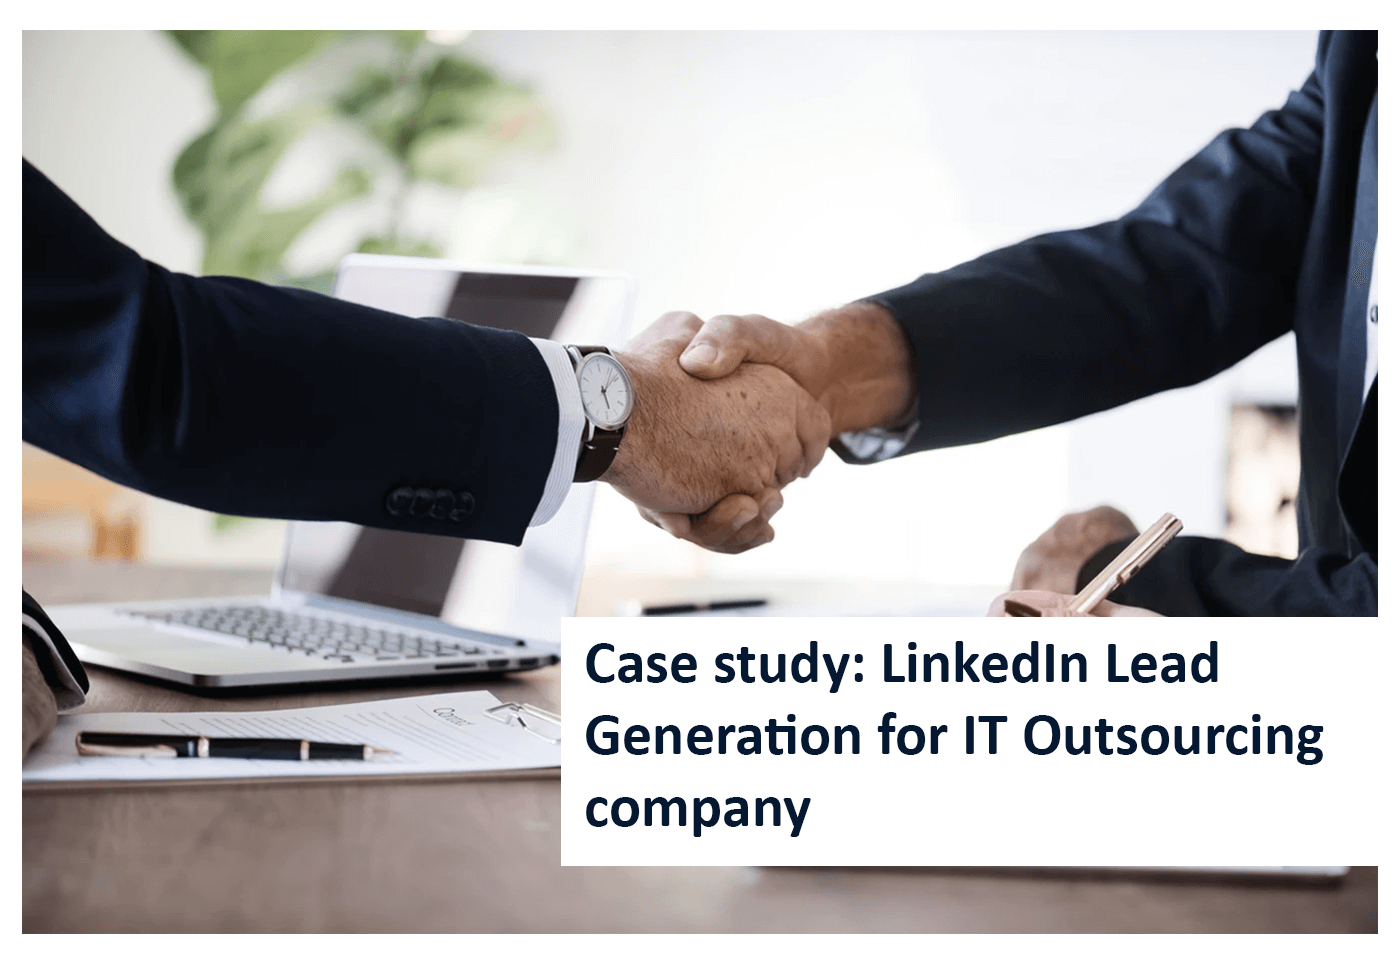 Case study LinkedIn Lead Generation for IT Outsourcing company